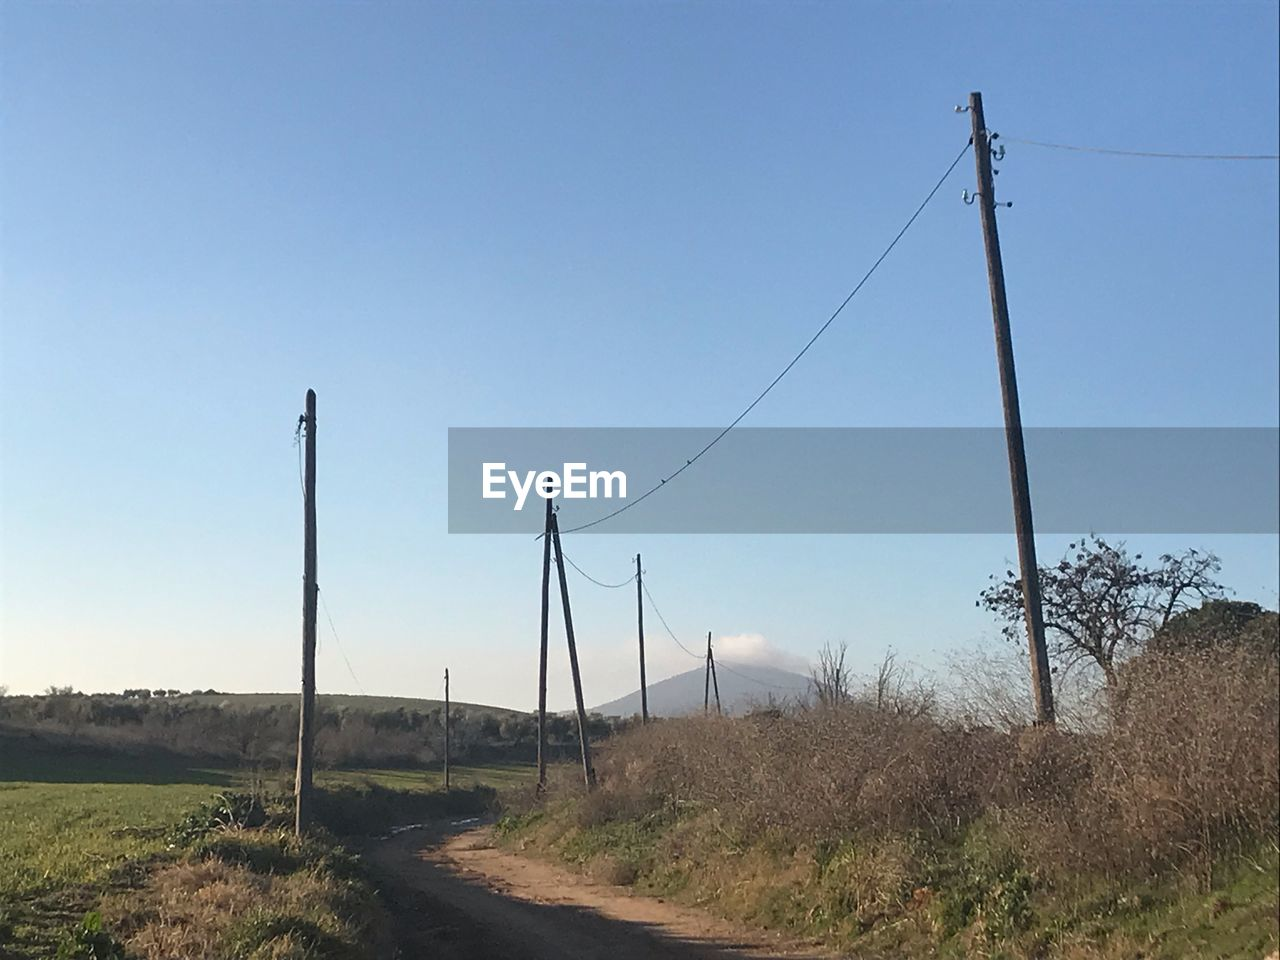 sky, electricity, landscape, clear sky, technology, cable, land, no people, road, nature, field, connection, plant, electricity pylon, environment, pole, day, power line, grass, tranquility, outdoors, power supply, telephone line